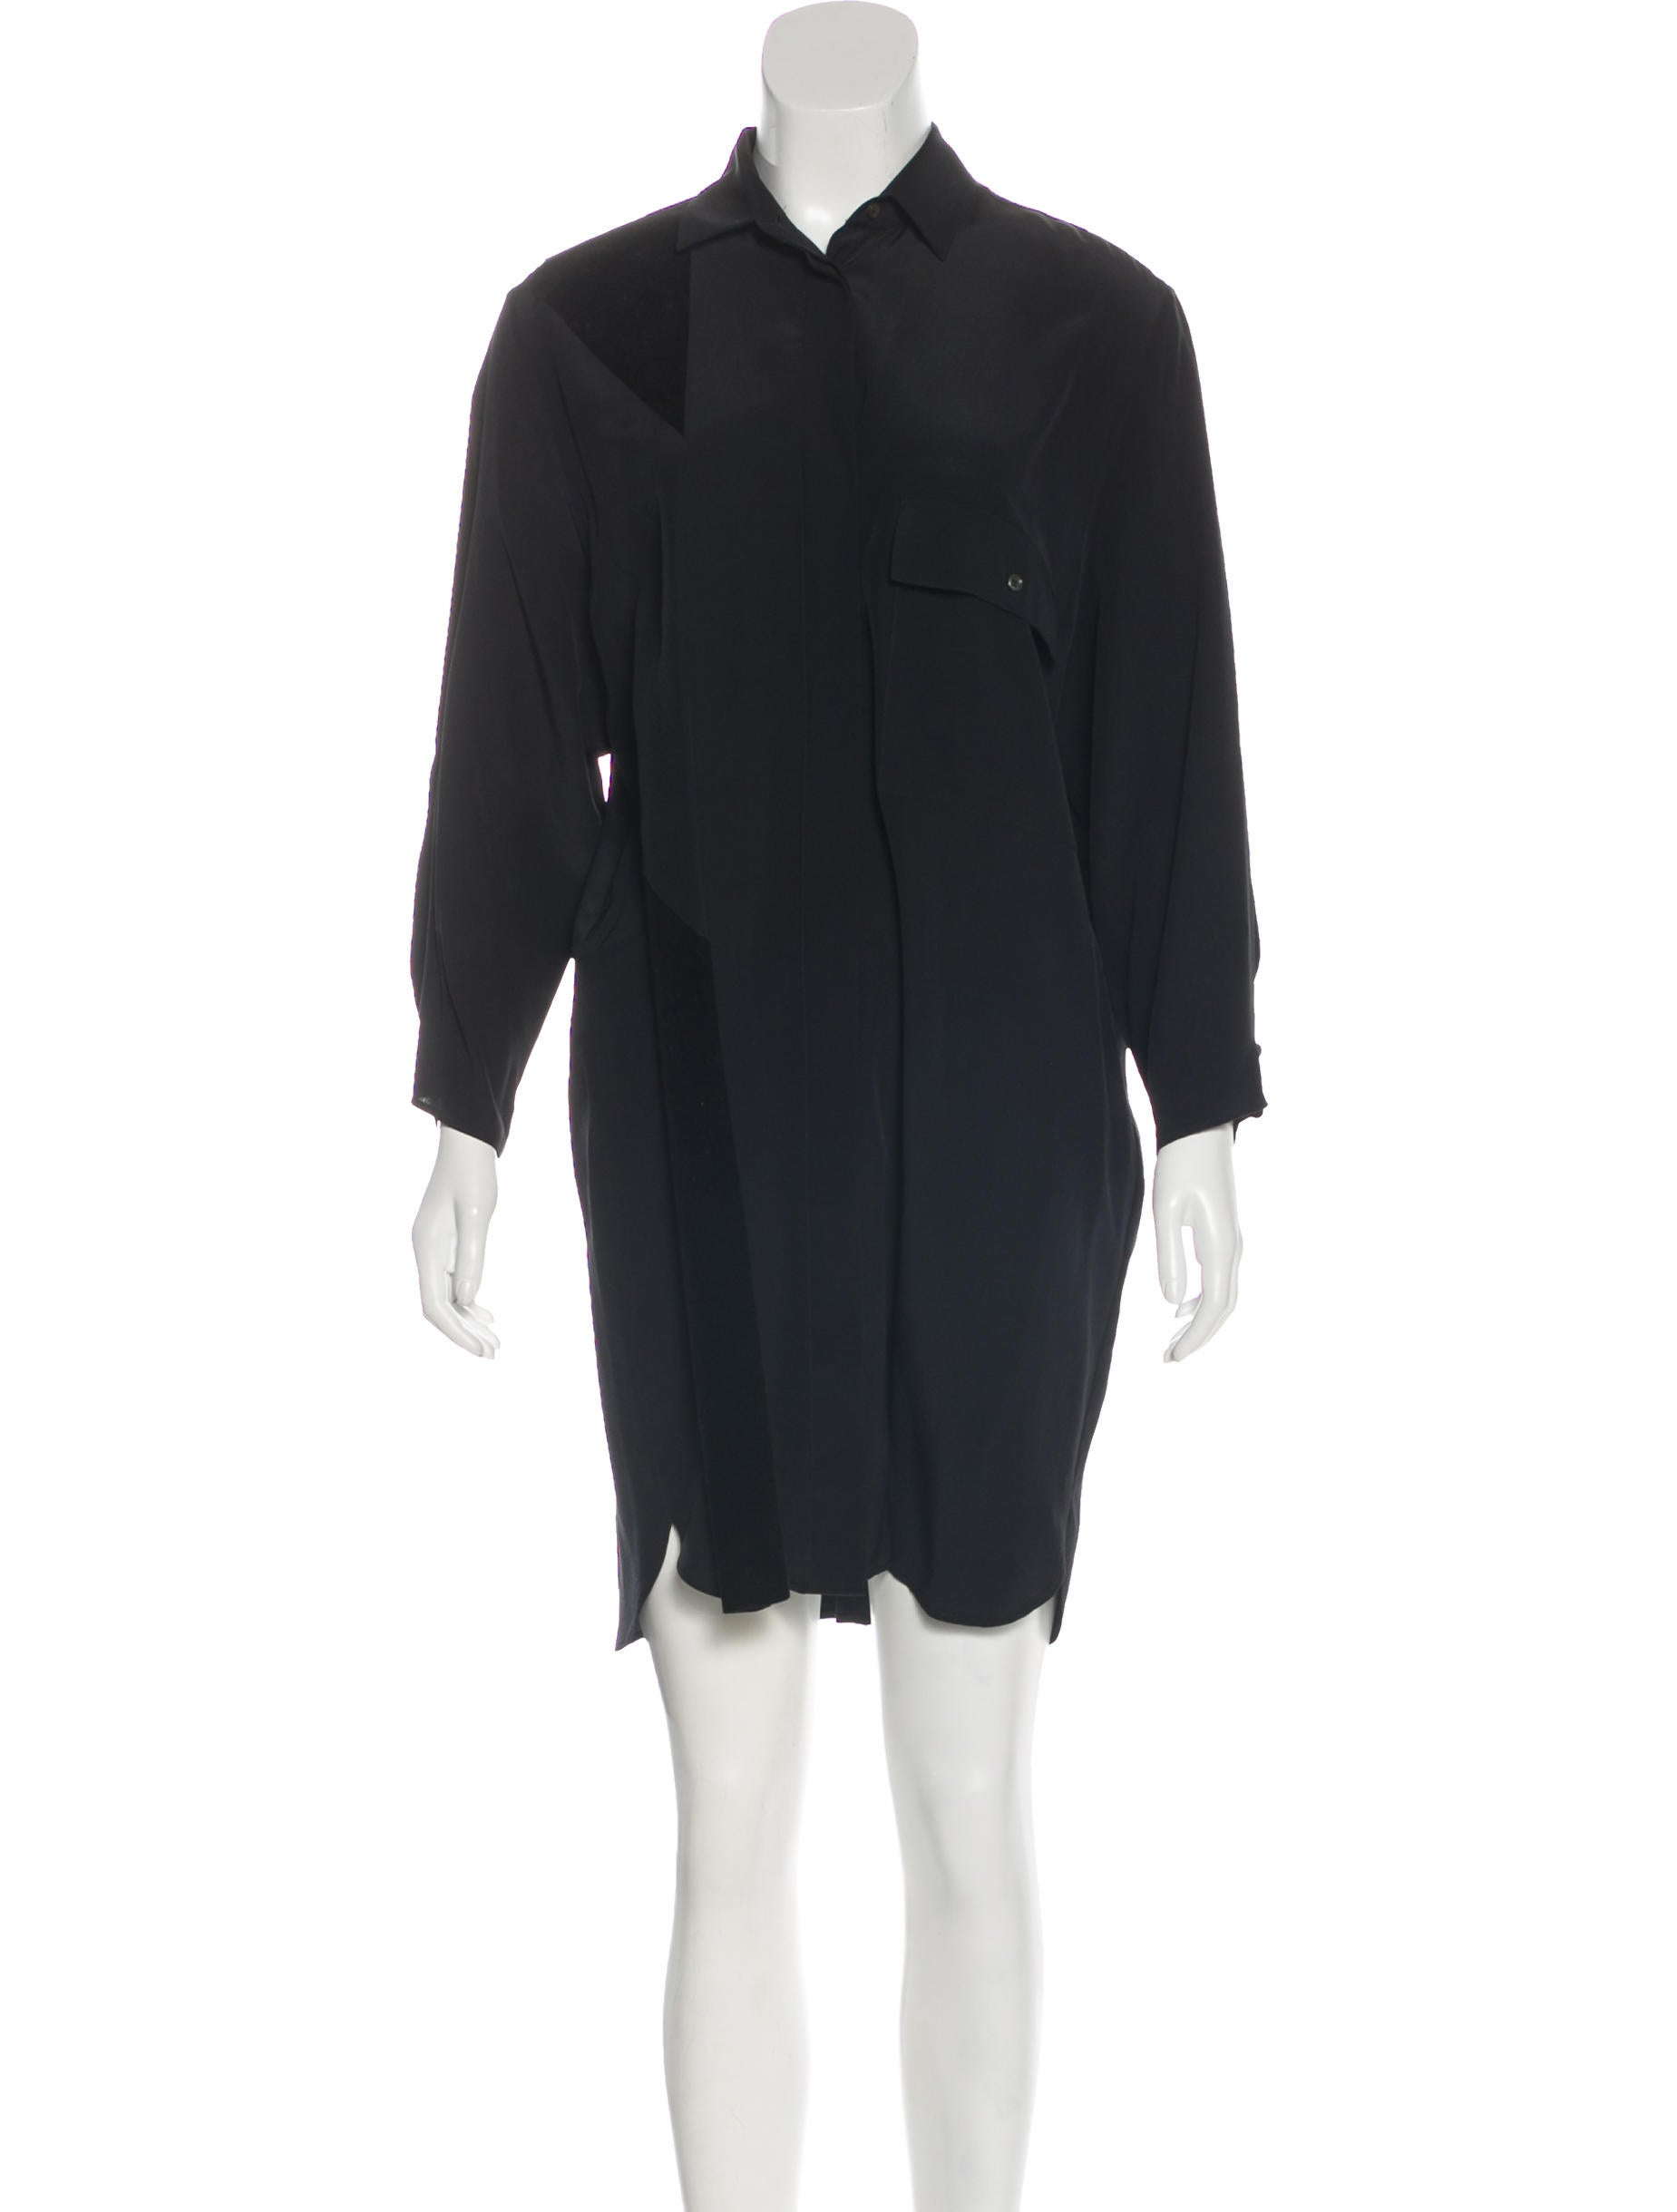 8b38a2dbf56 Black Silk Shirt Dress – EDGE Engineering and Consulting Limited